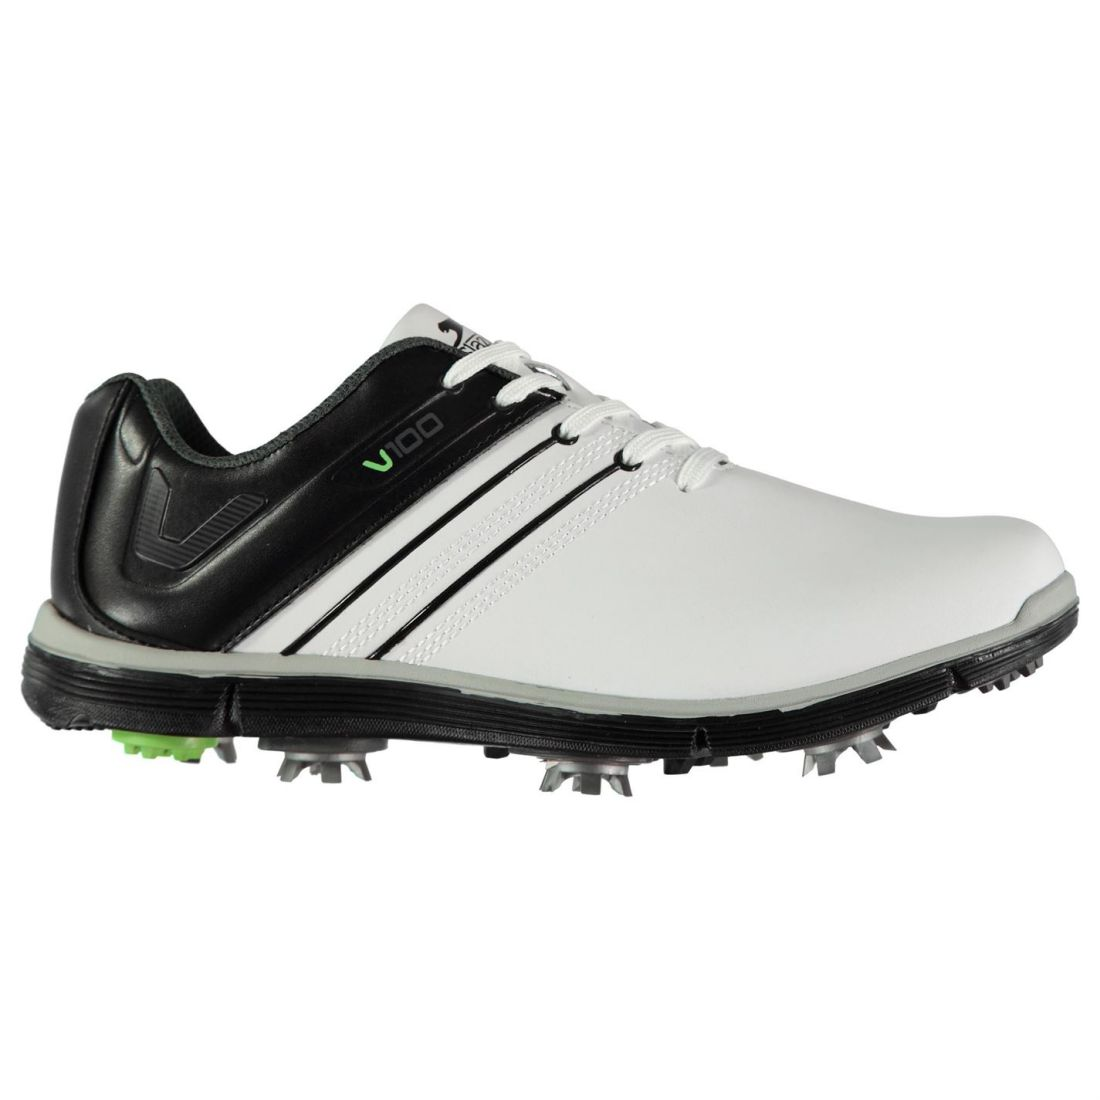 76fcbc4474 Image is loading Slazenger-V100-Golf-Shoes-Mens-Gents-Spiked-Laces-